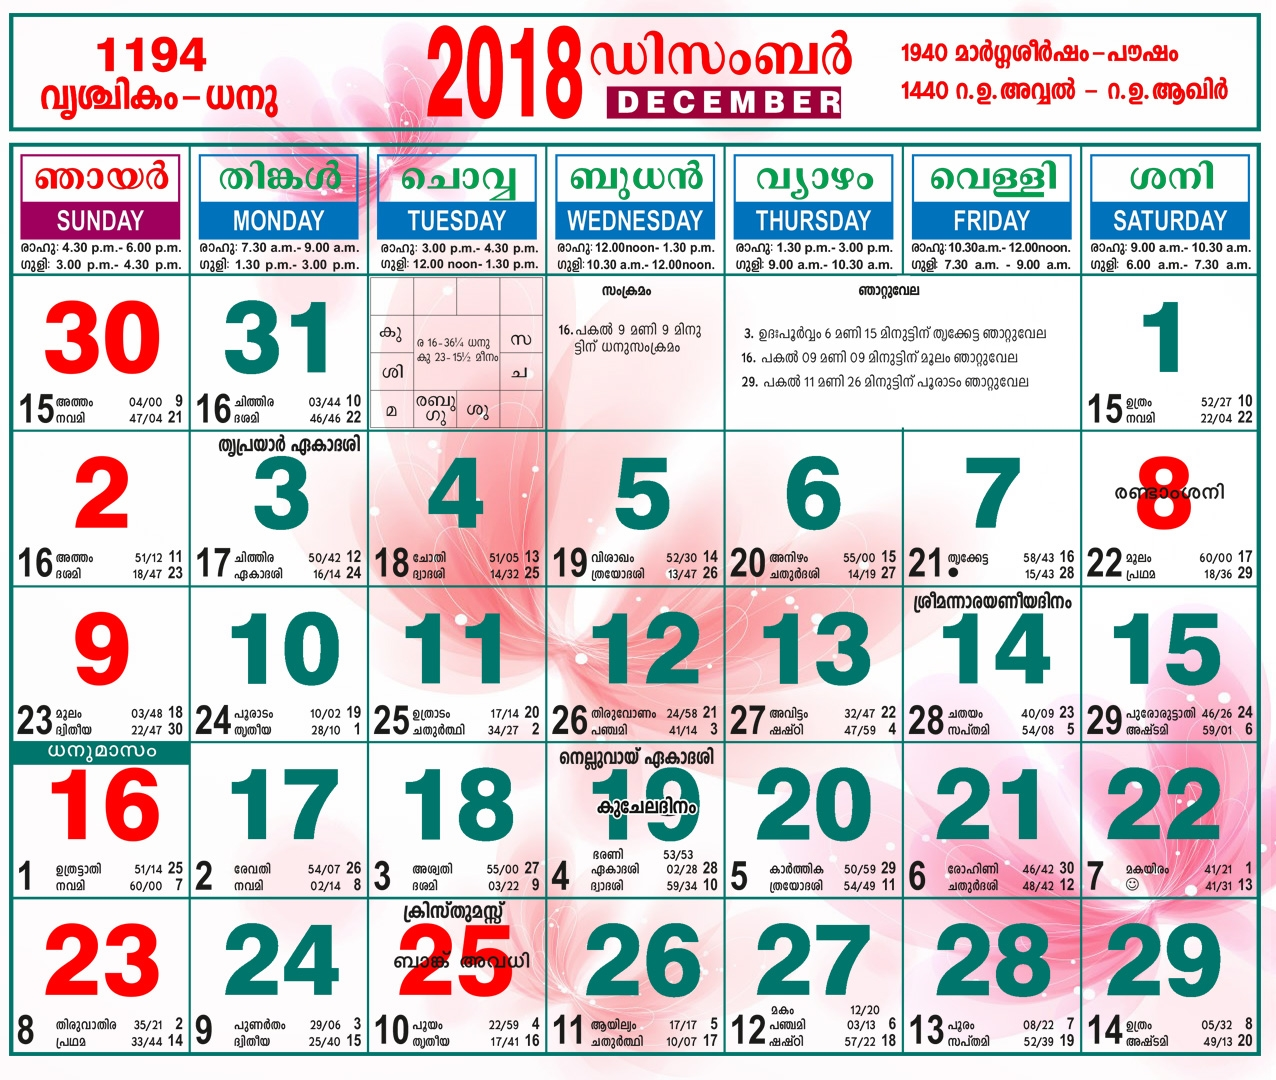 malayala manorama calendar 2018 december calendar printable free Kerala Government Calendar 2018 Pdf Free Download erdferdf